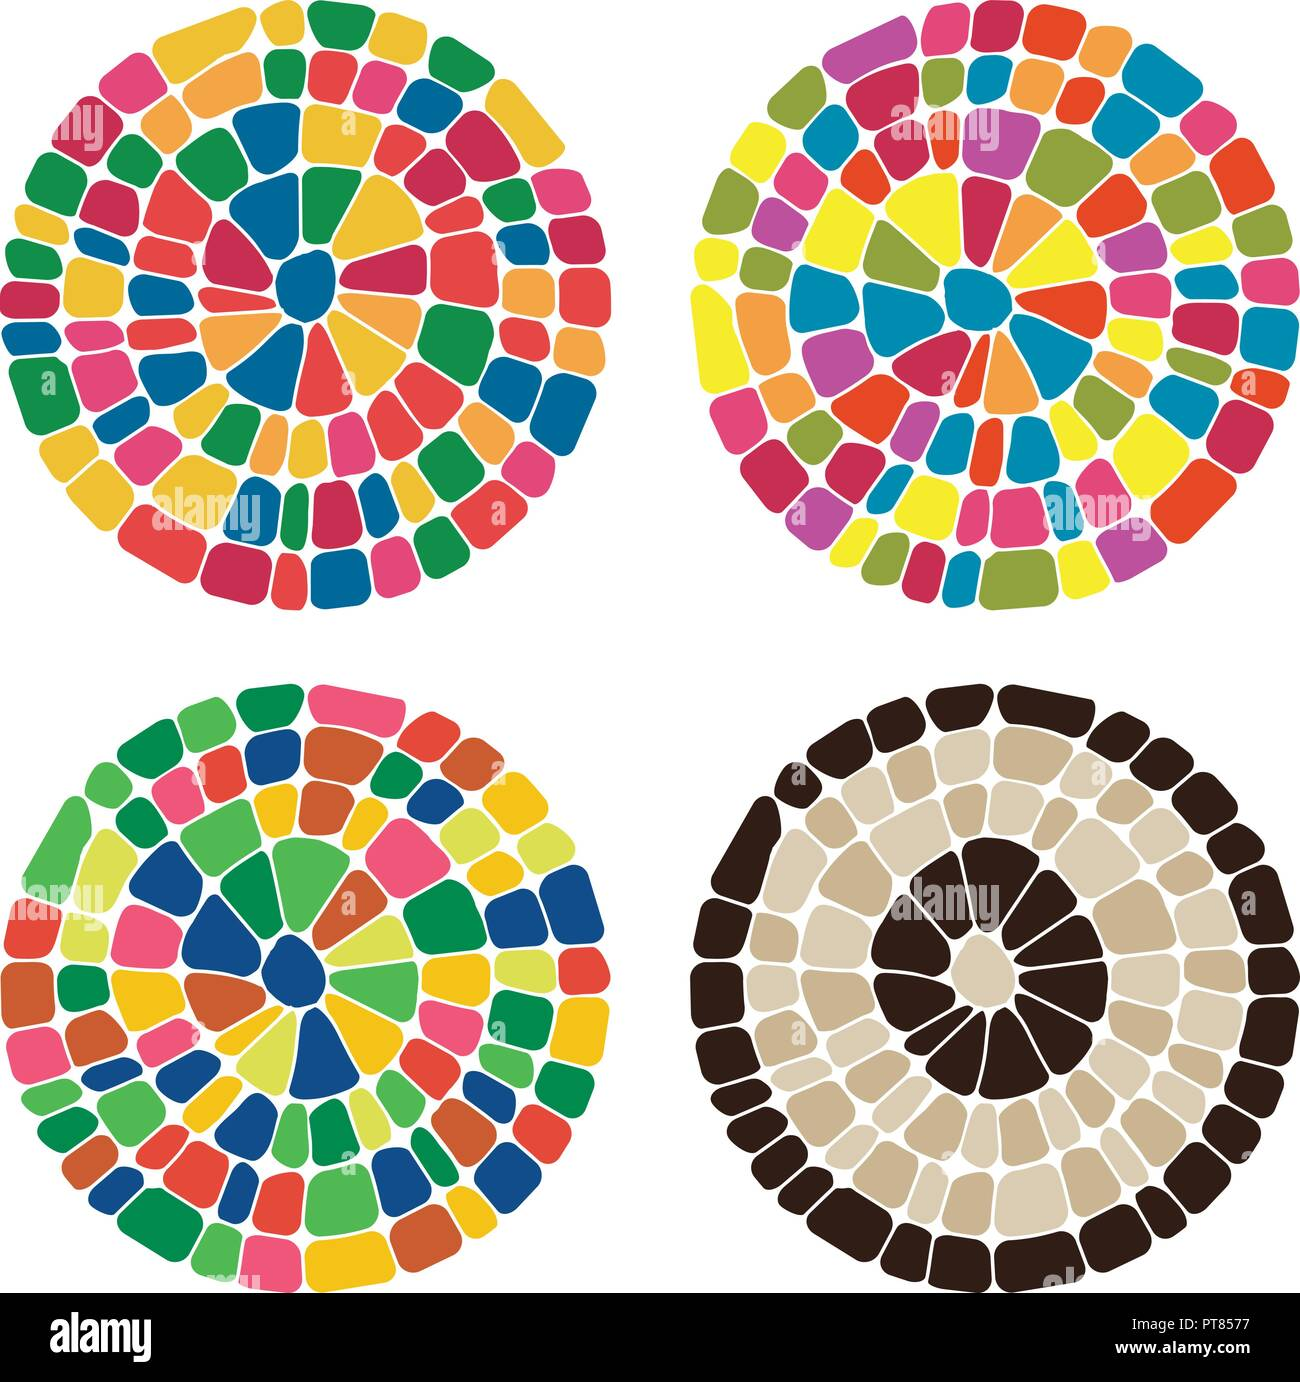 vector abstract colorful mosaic round patterns. set of pebble stone mosaic circle backgrounds, rainbow colors Stock Vector